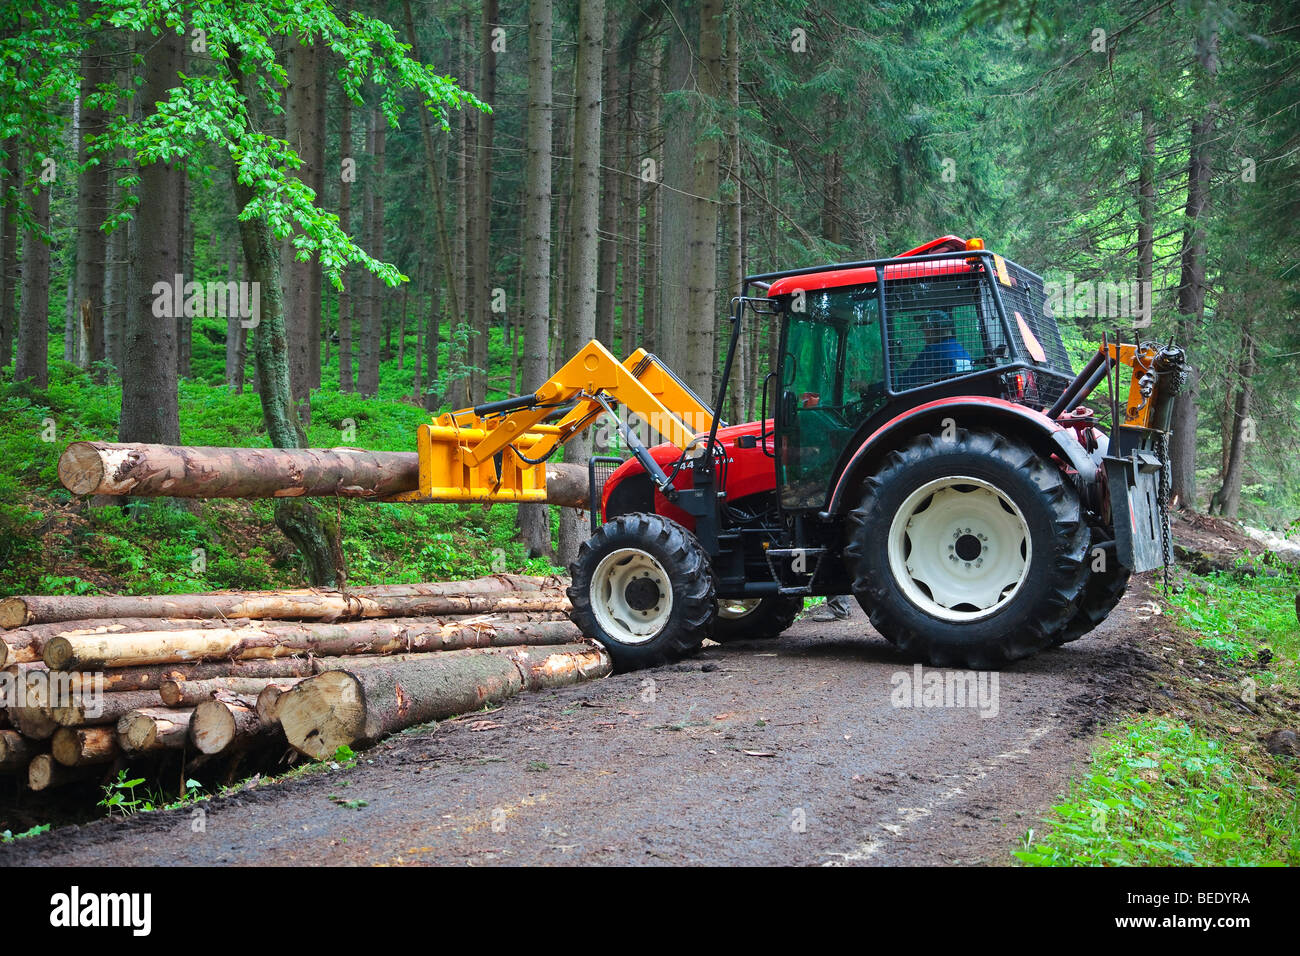 Tractor Man On Cutting Trees : Tractor lifting a cut tree on pile alongside road in